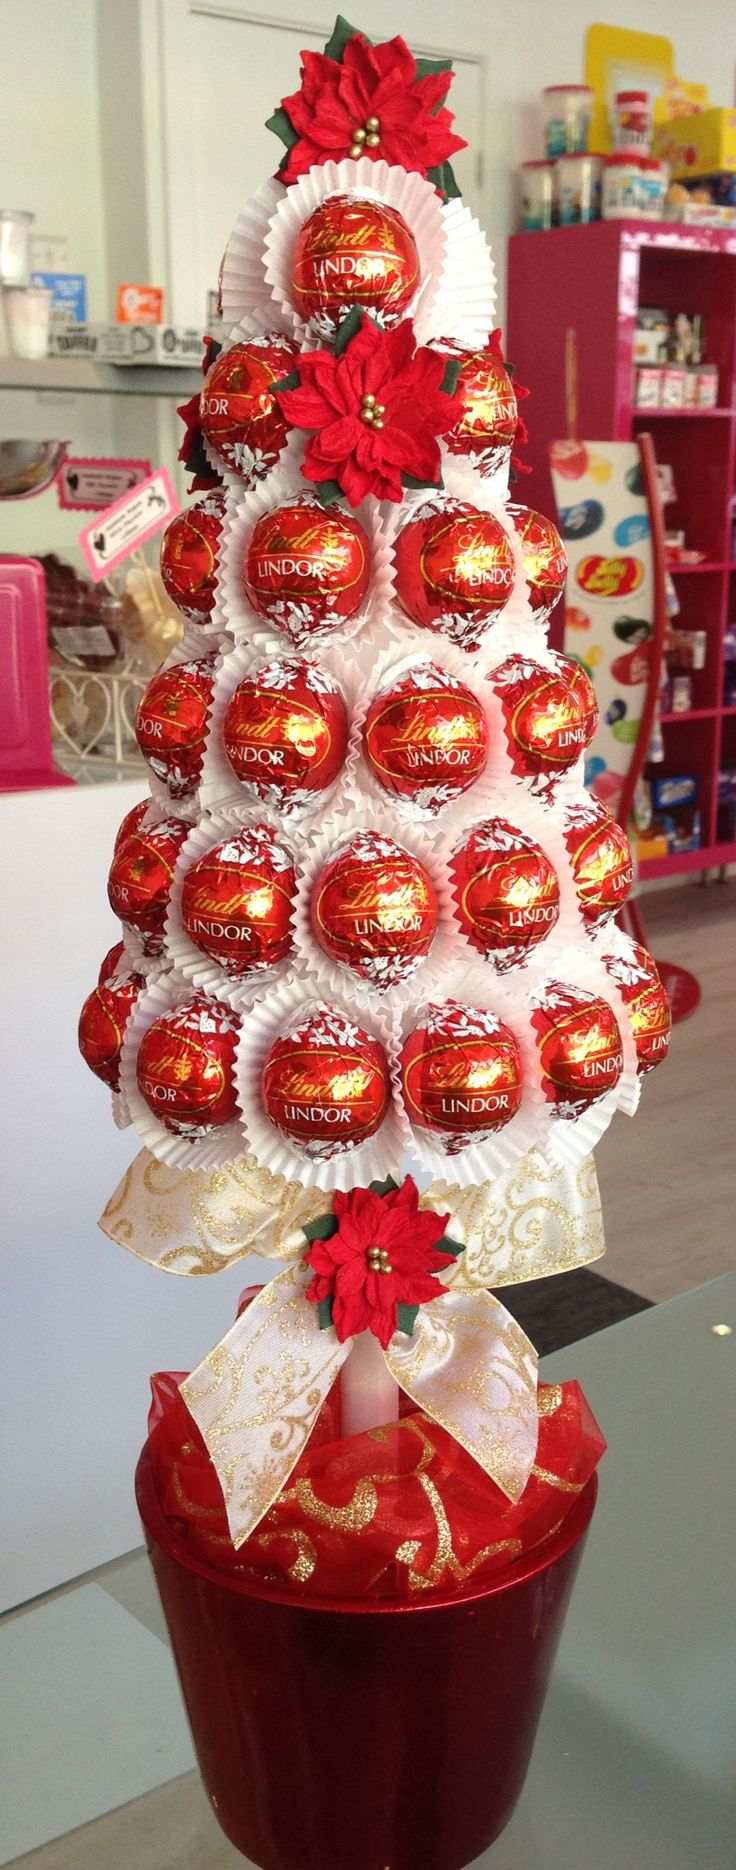 chocolate candy bouquet in glass container ideas - Google Search